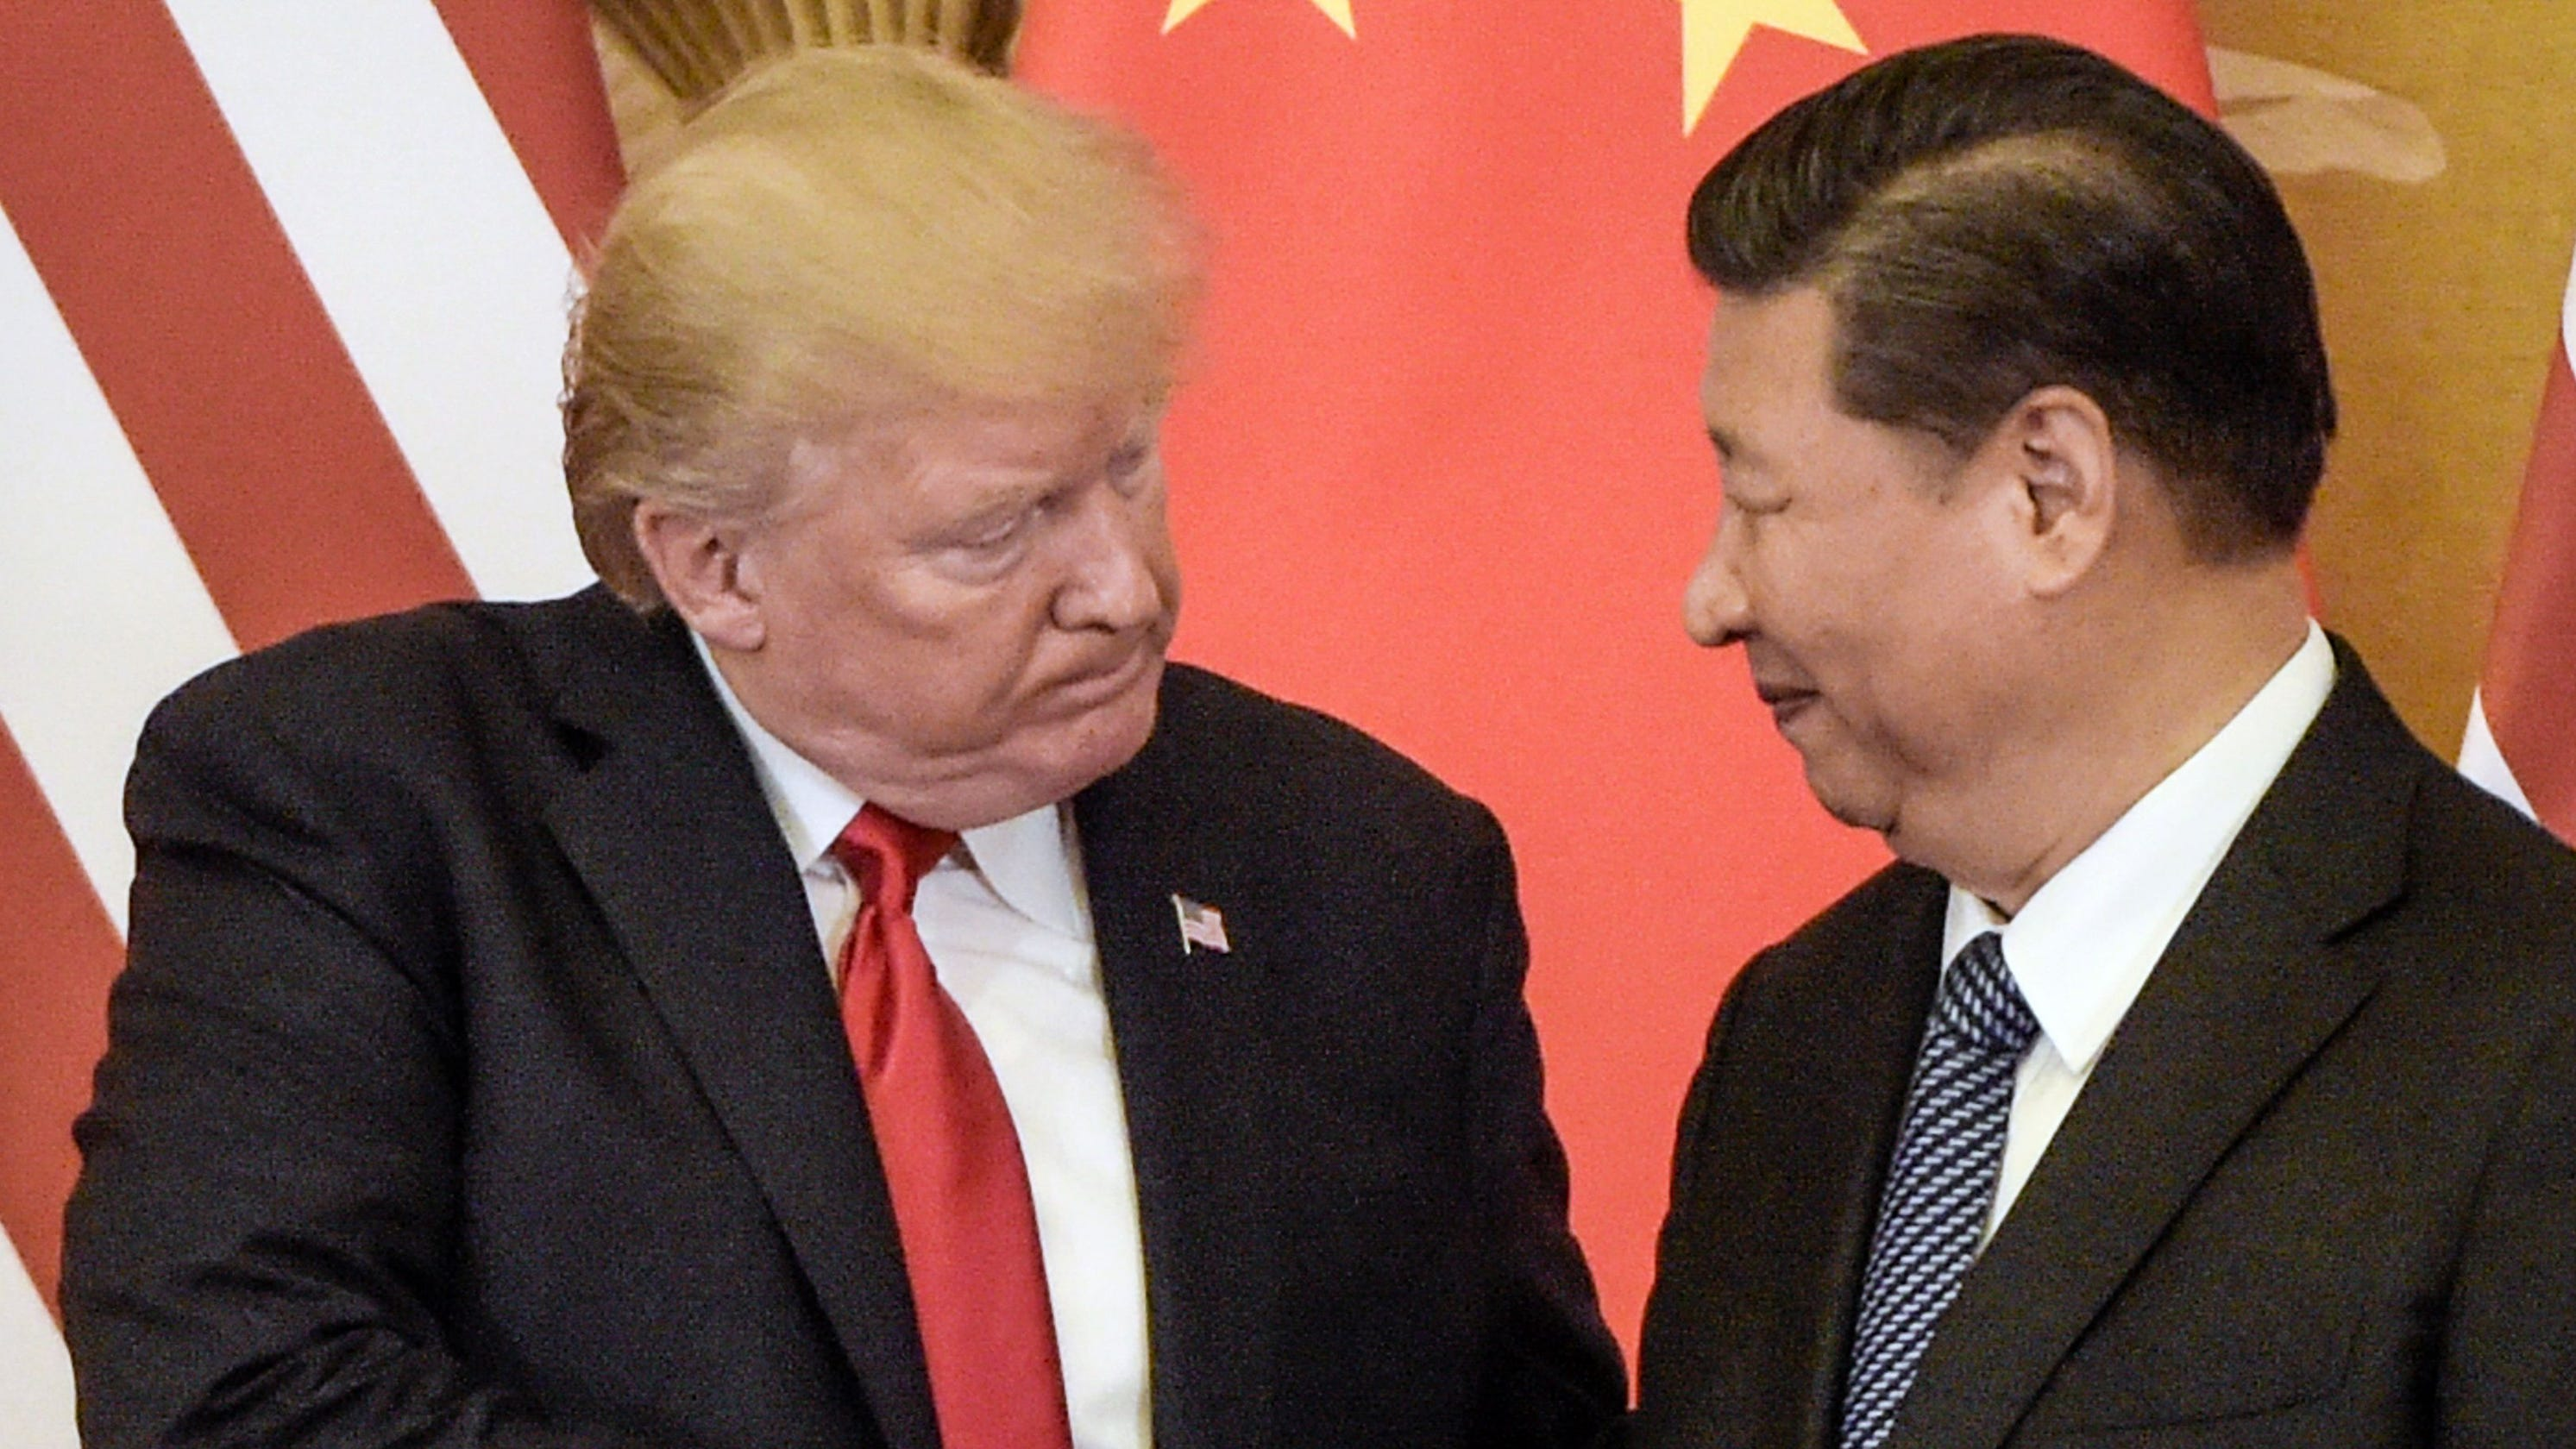 Senior China adviser: Trump to blame for delays in securing final trade deal, says China has been 'accommodating'